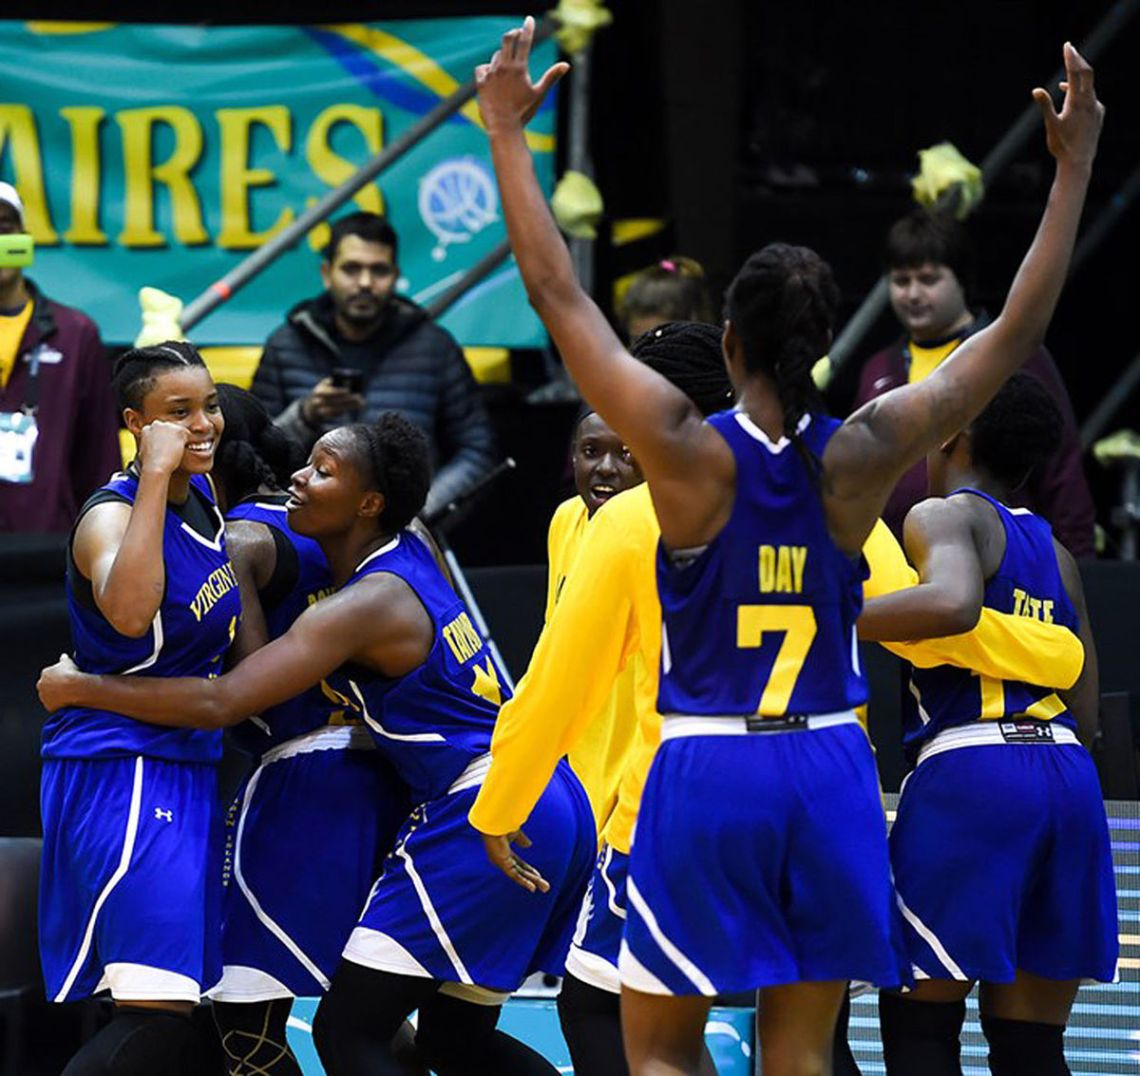 719381e389a Virgin Islands Women s Basketball Team Shocks The World With 67-60 Overtime  Win Over Brazil In FIBA AmeriCup Championships